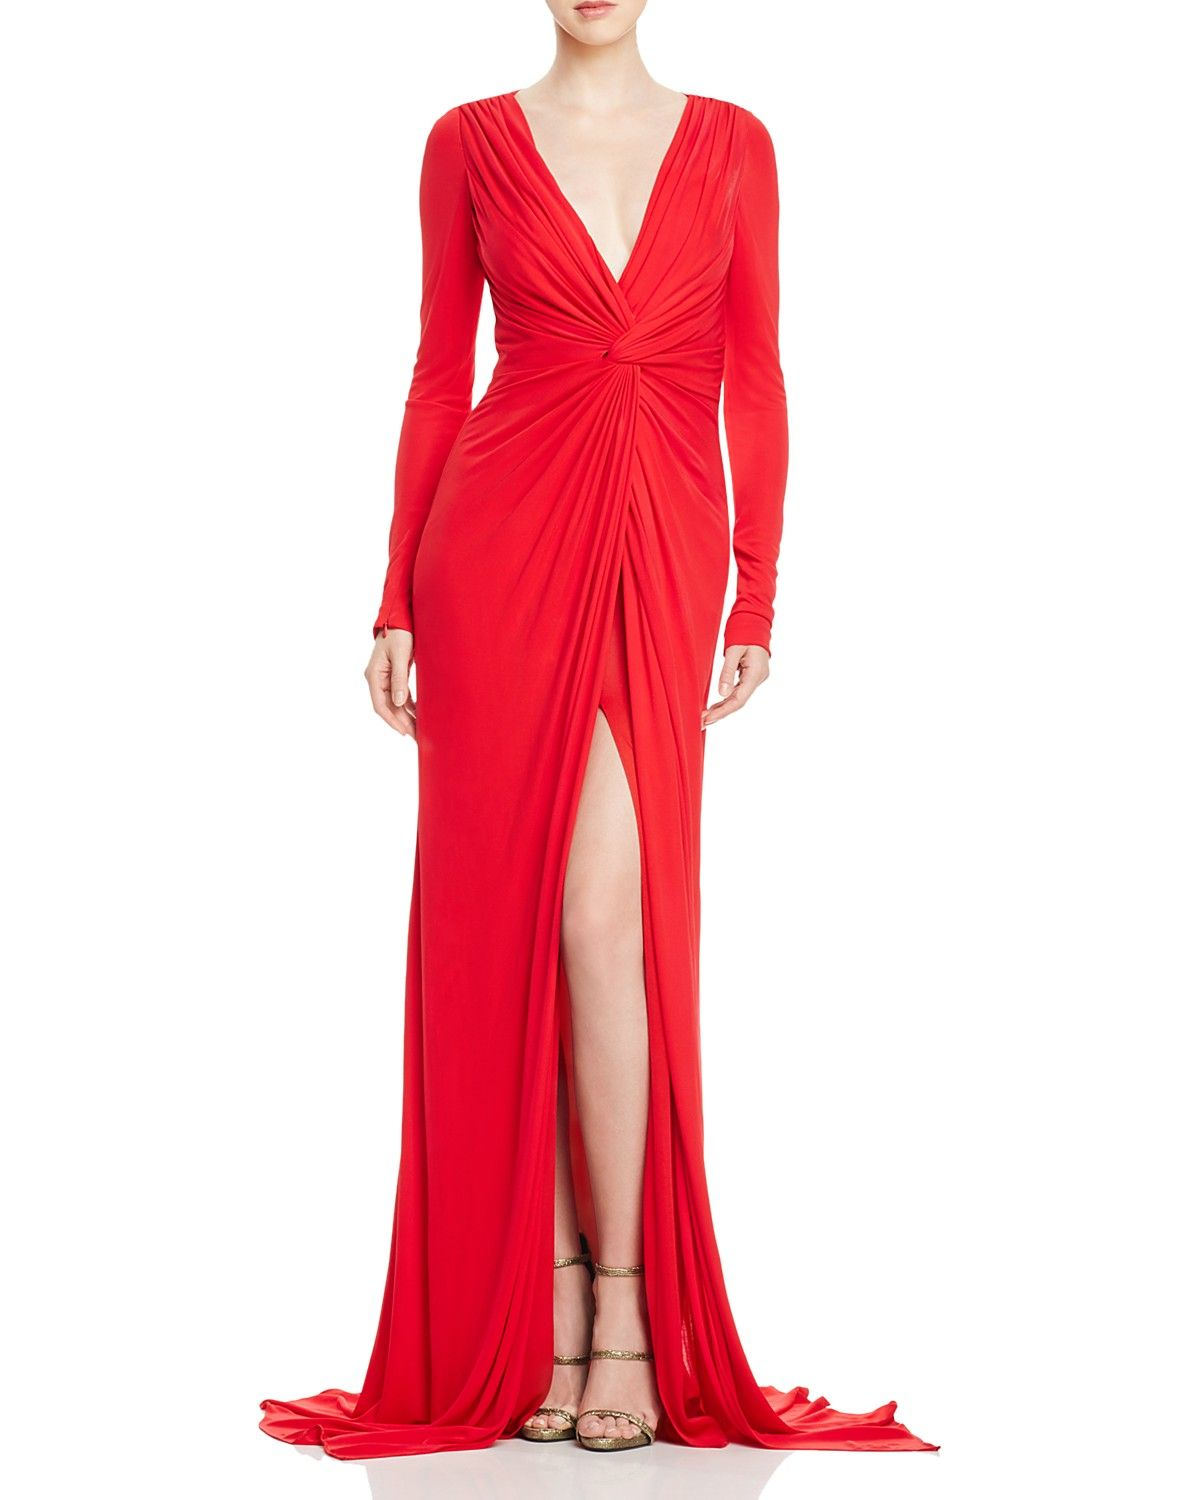 Badgley Mischka Knot Front Gown Women Bloomingdale S Red Evening Gowns Evening Dresses Red Evening Dress [ 1500 x 1200 Pixel ]